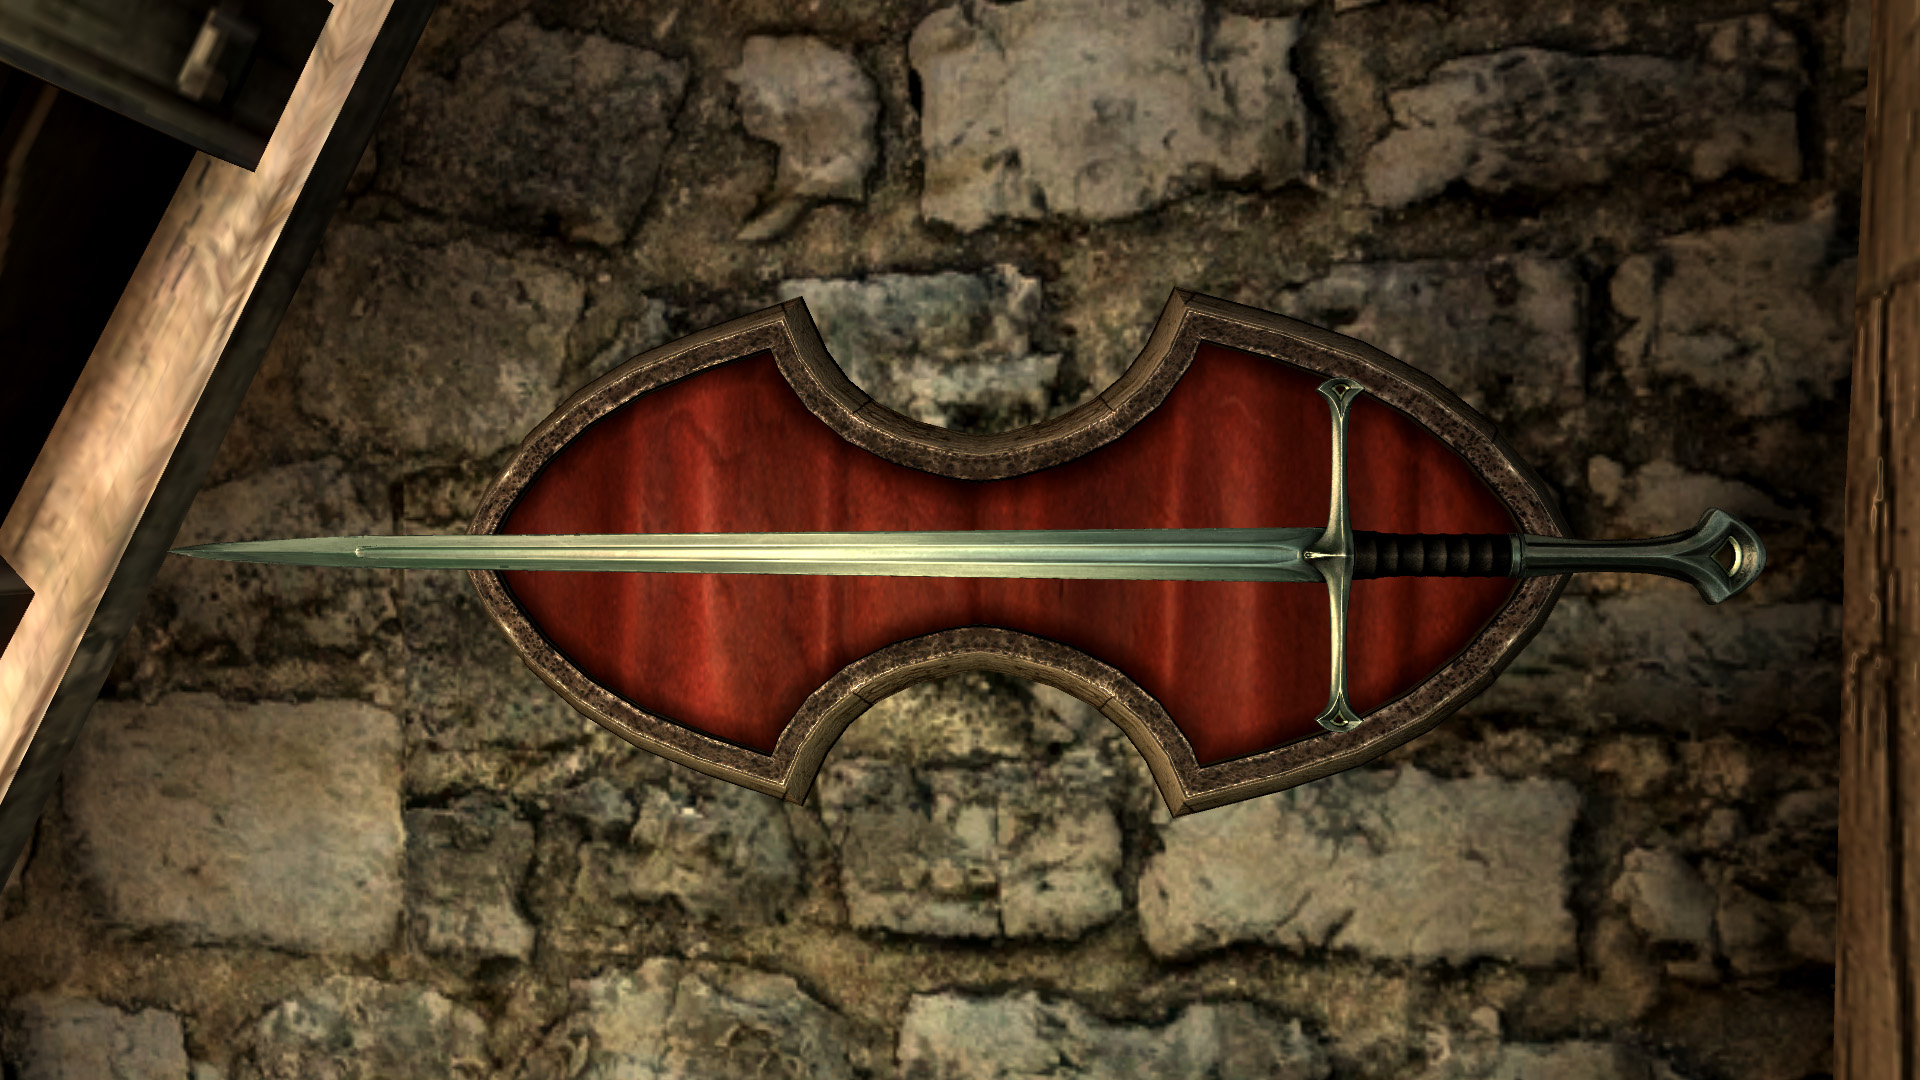 Lotr Weapons Collection Elder Scrolls Skyrim Images Page 2